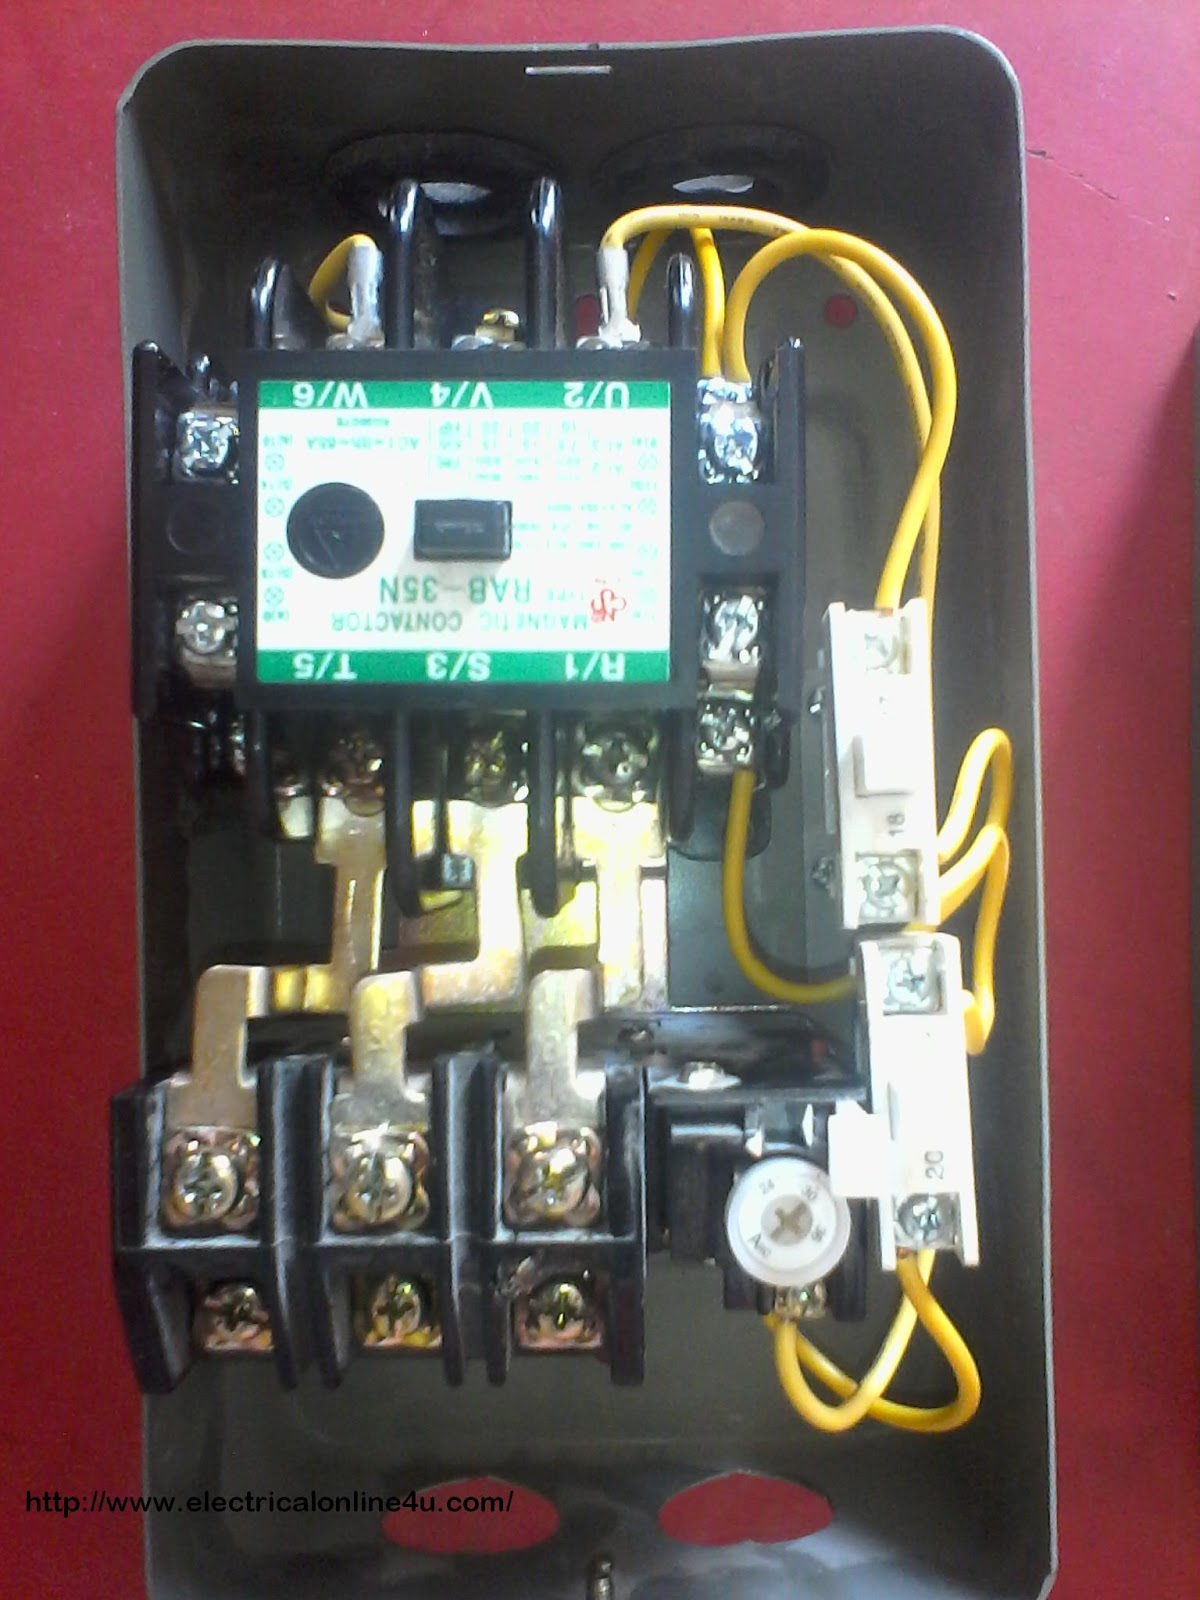 contactor%2Bwiring how to wire contactor and overload relay contactor wiring telemecanique contactor wiring diagram at sewacar.co